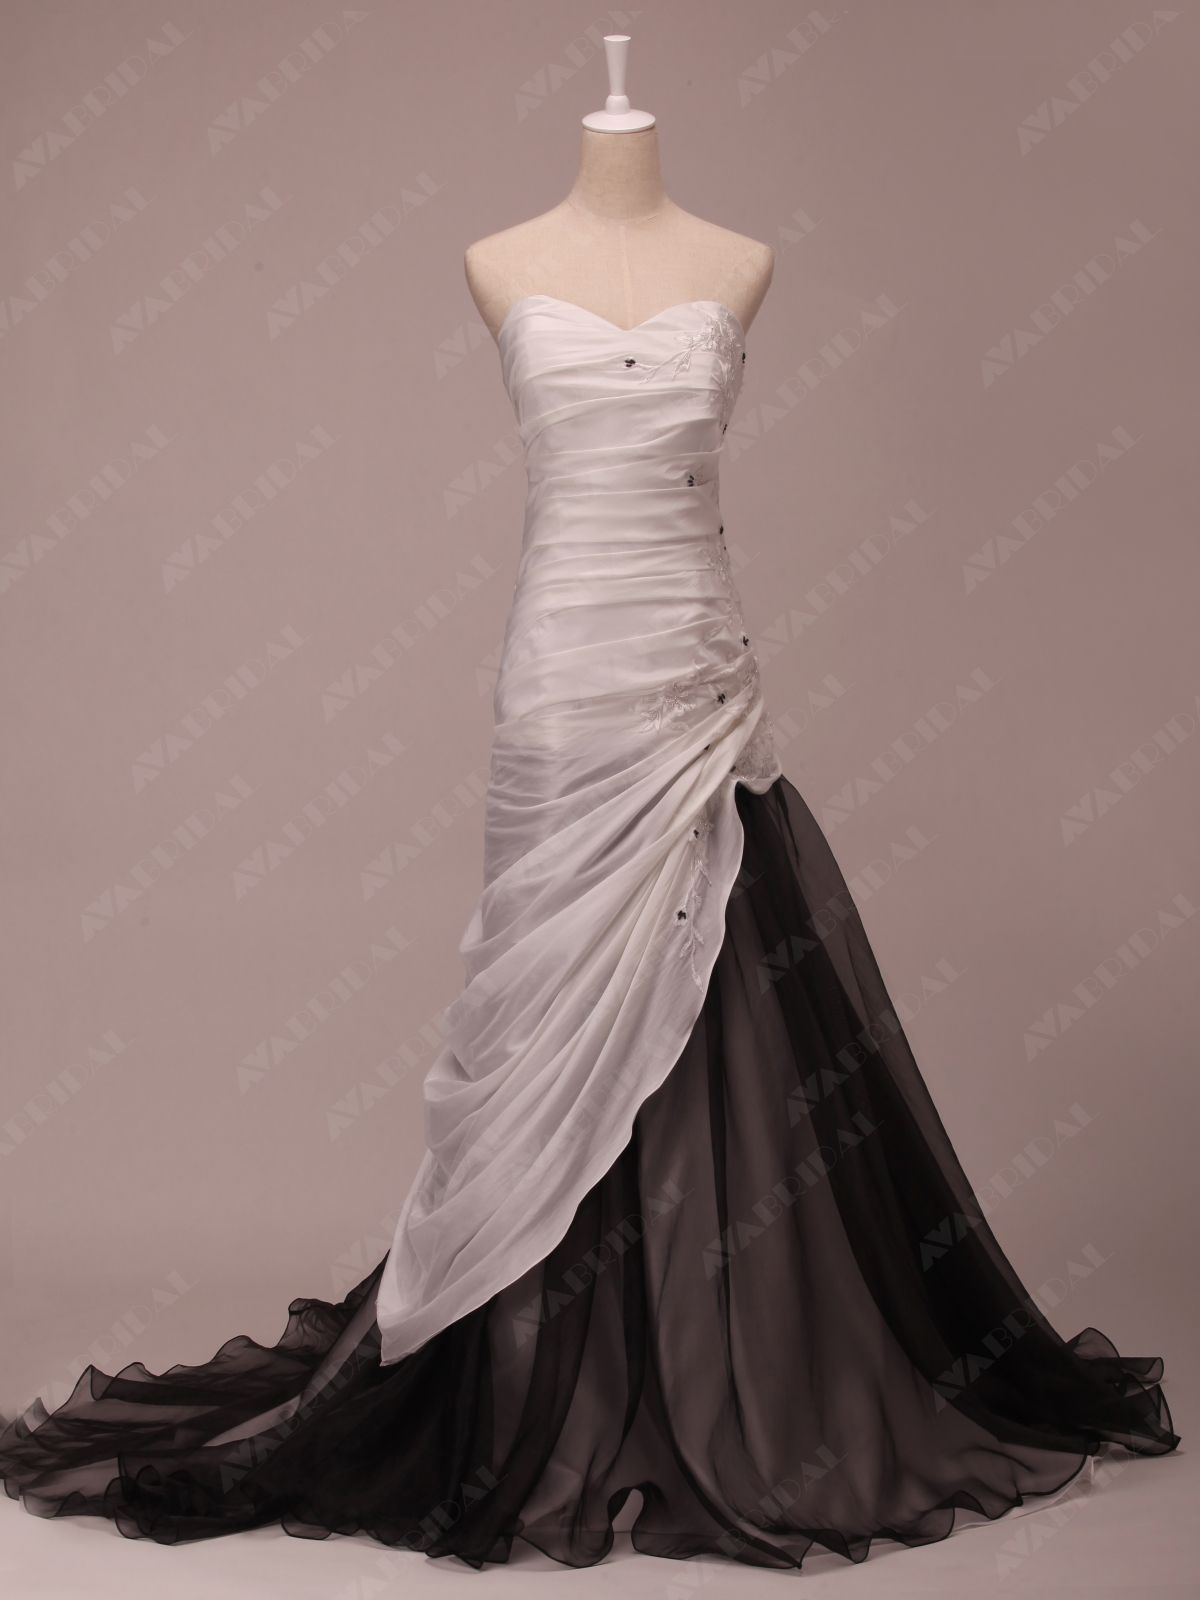 Champagne colored wedding dress  Colored Wedding Dress Ava BridalAlthough I would rather the black